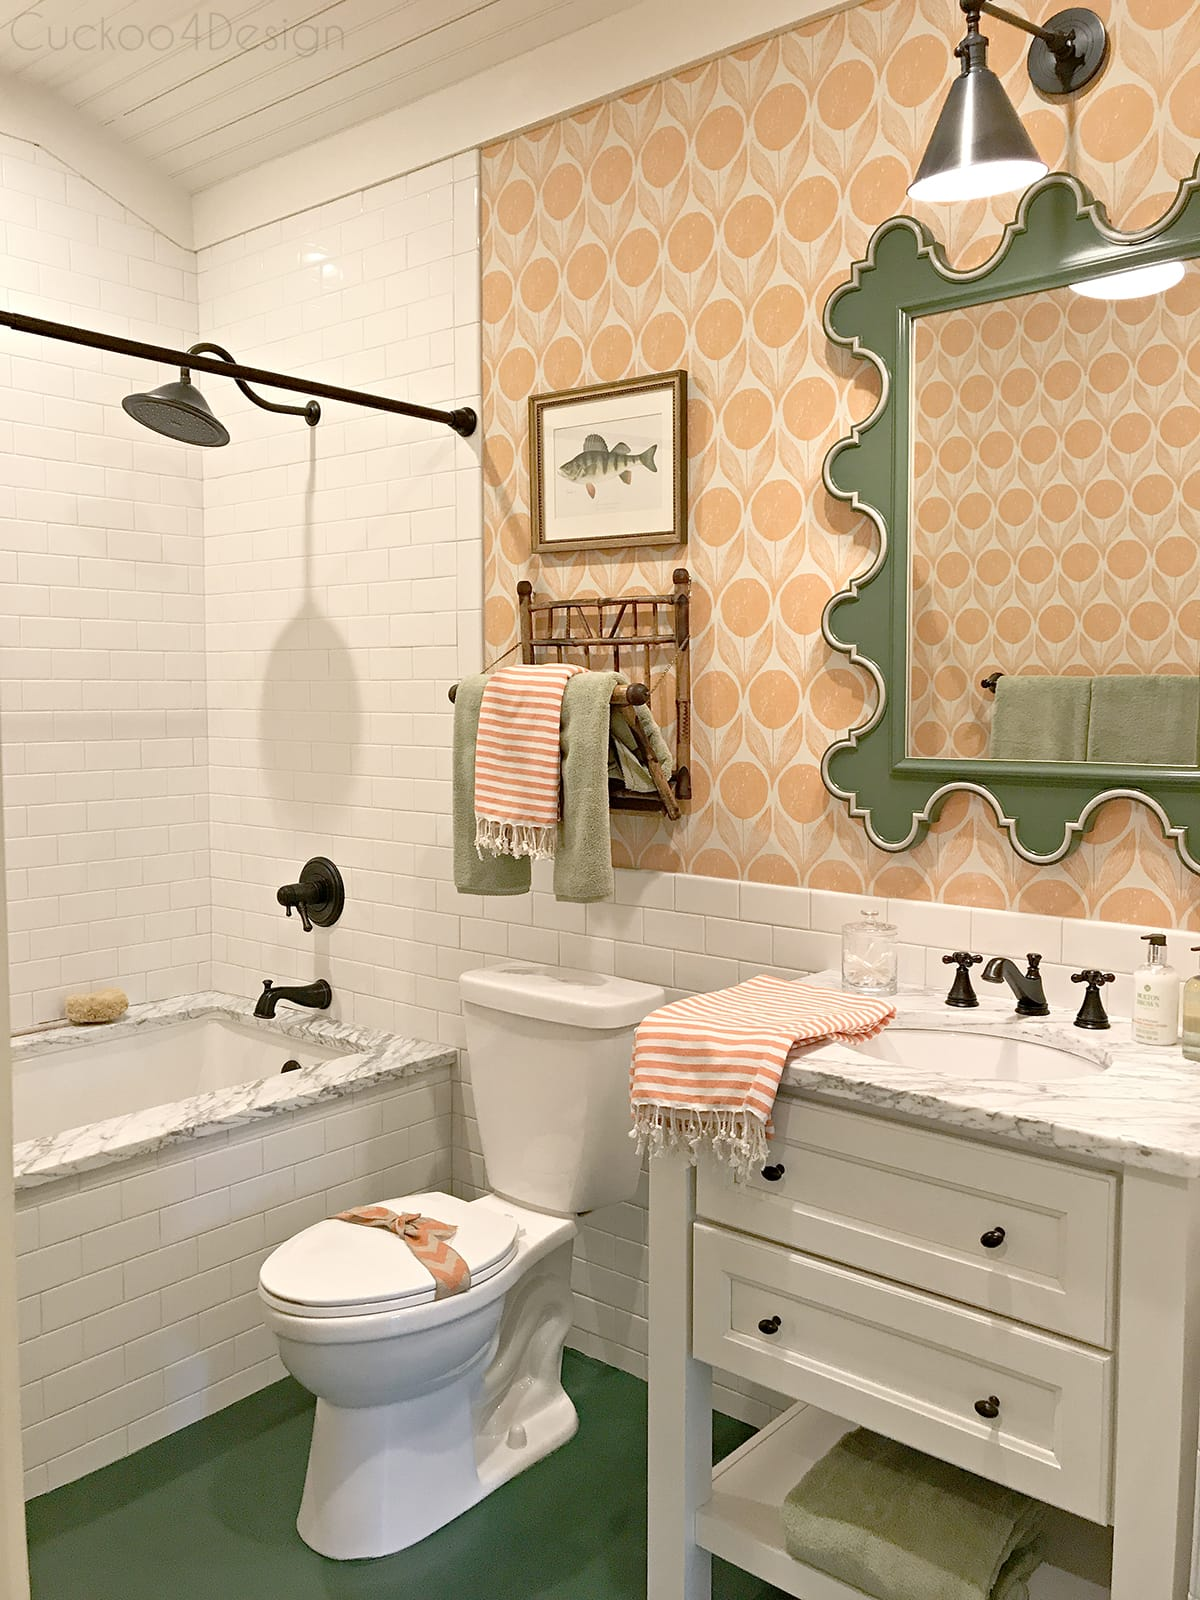 green scalloped mirror with orange wallpaper, hunter green painted wood floor and @deltafaucet fixtures in bathroom